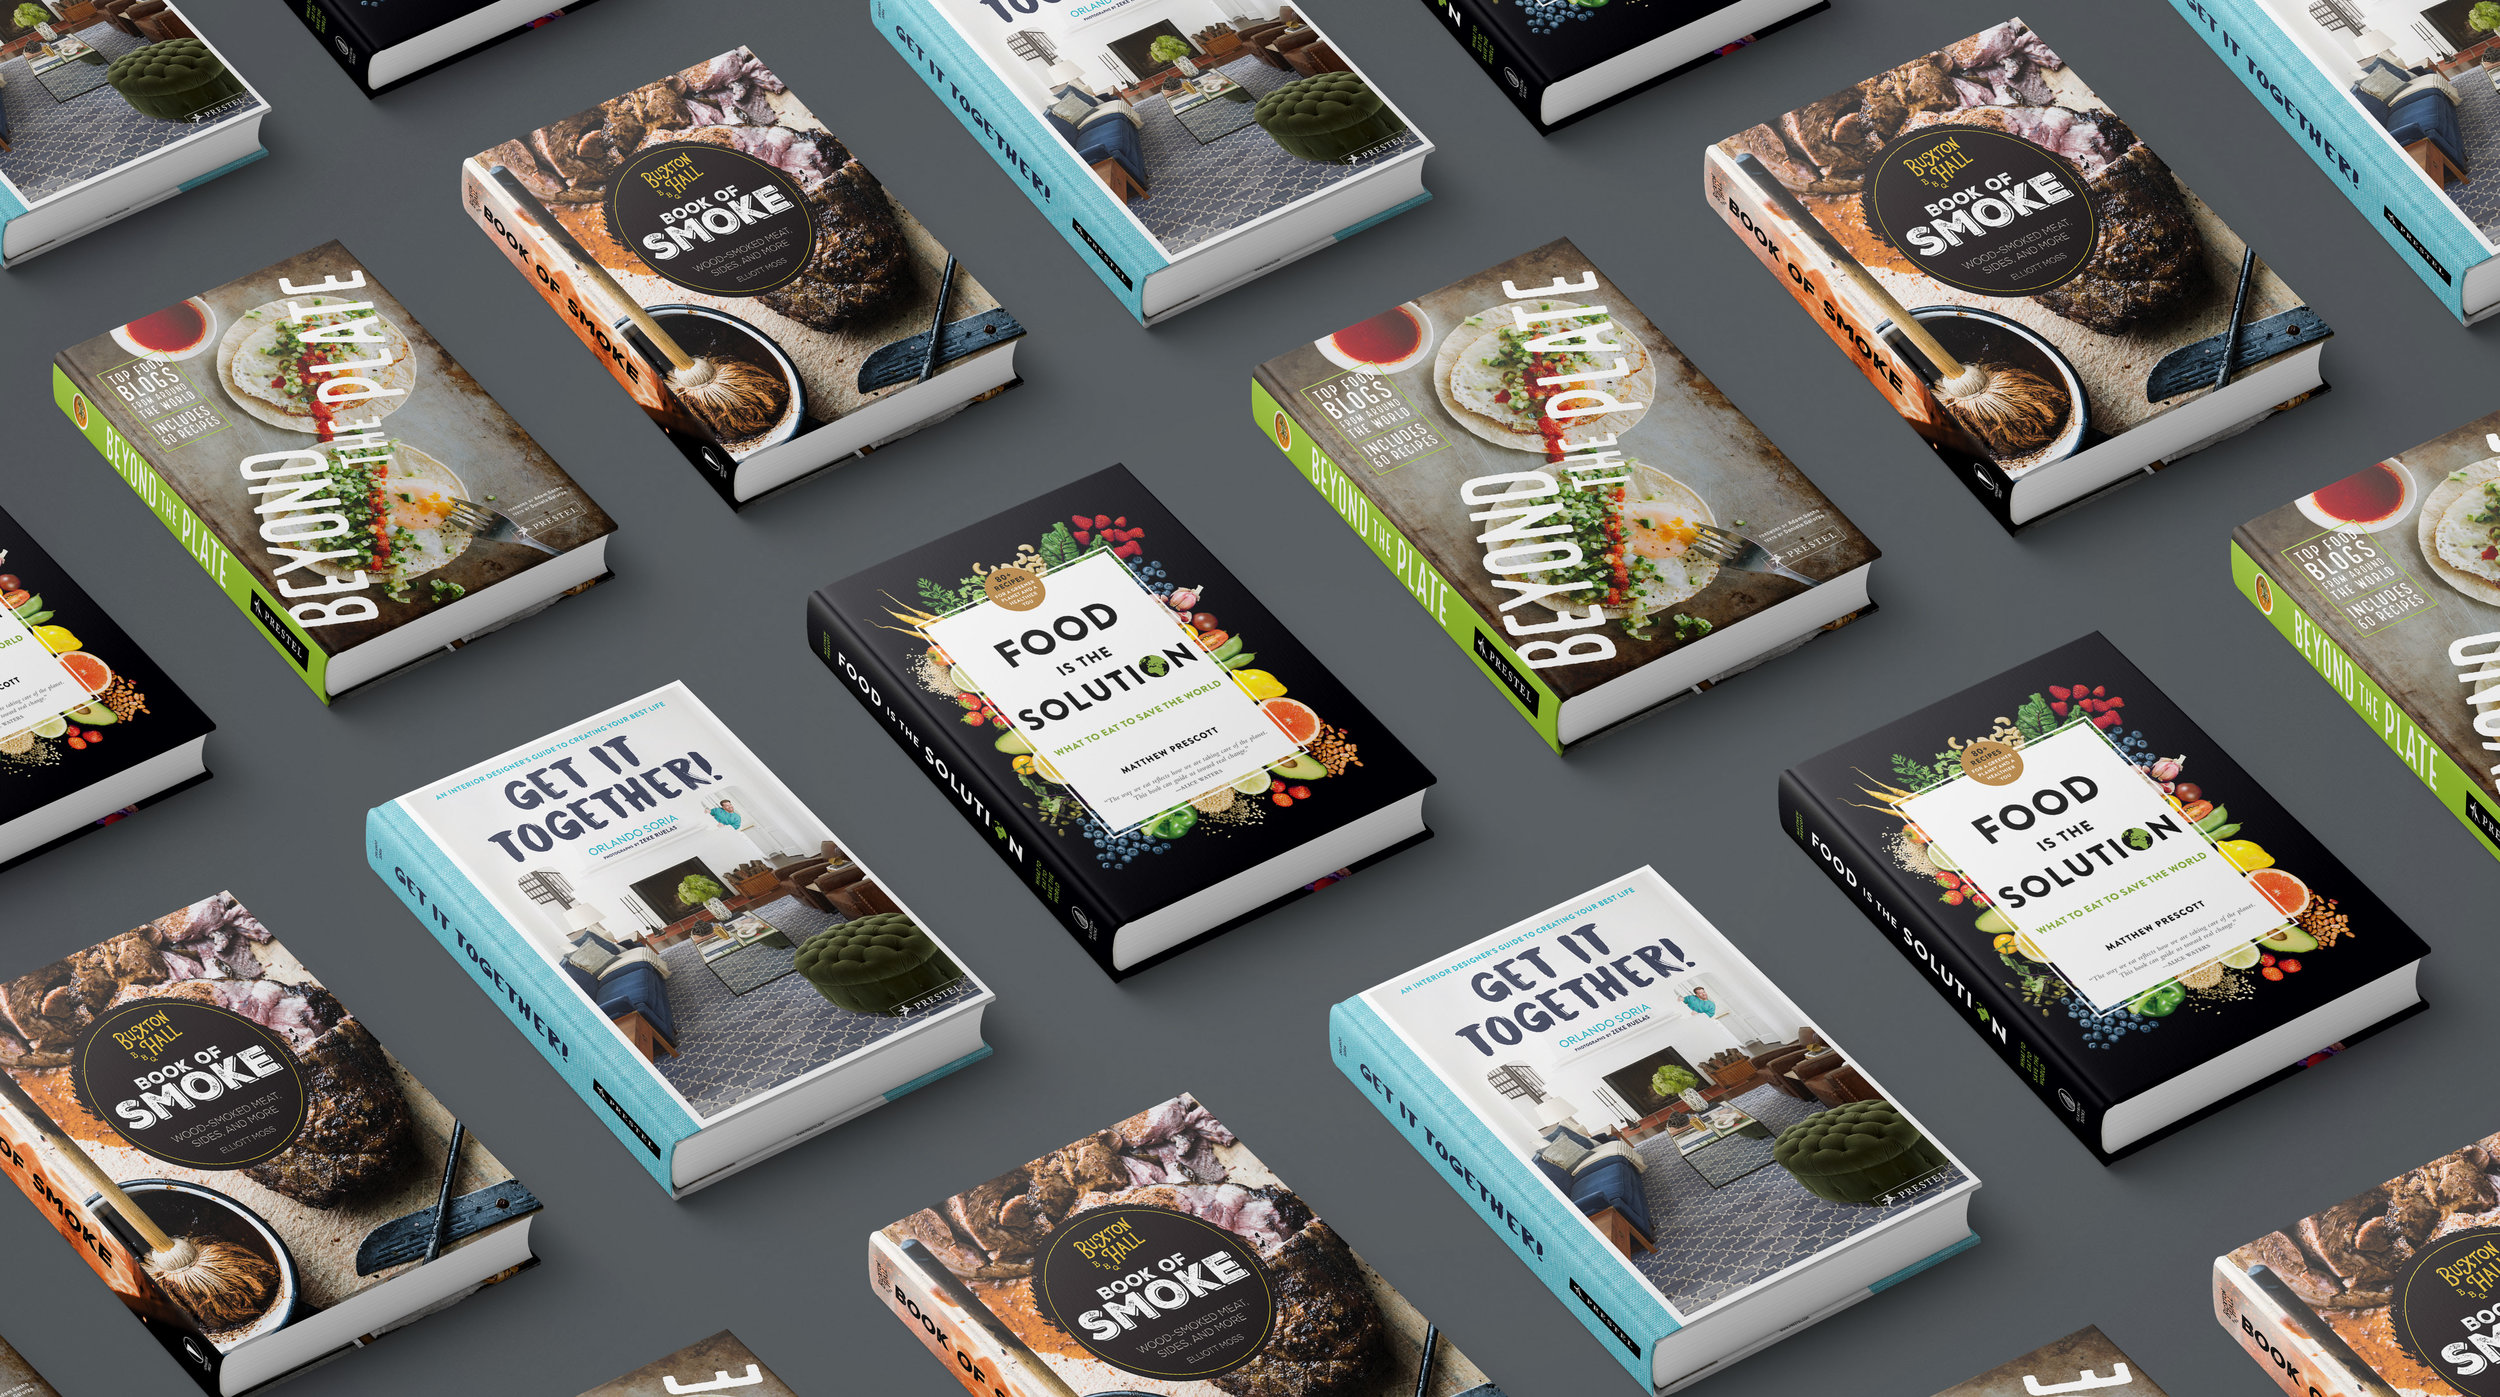 Some books I designed for Prestel, Flatiron Books, and Quarto Publishing Group